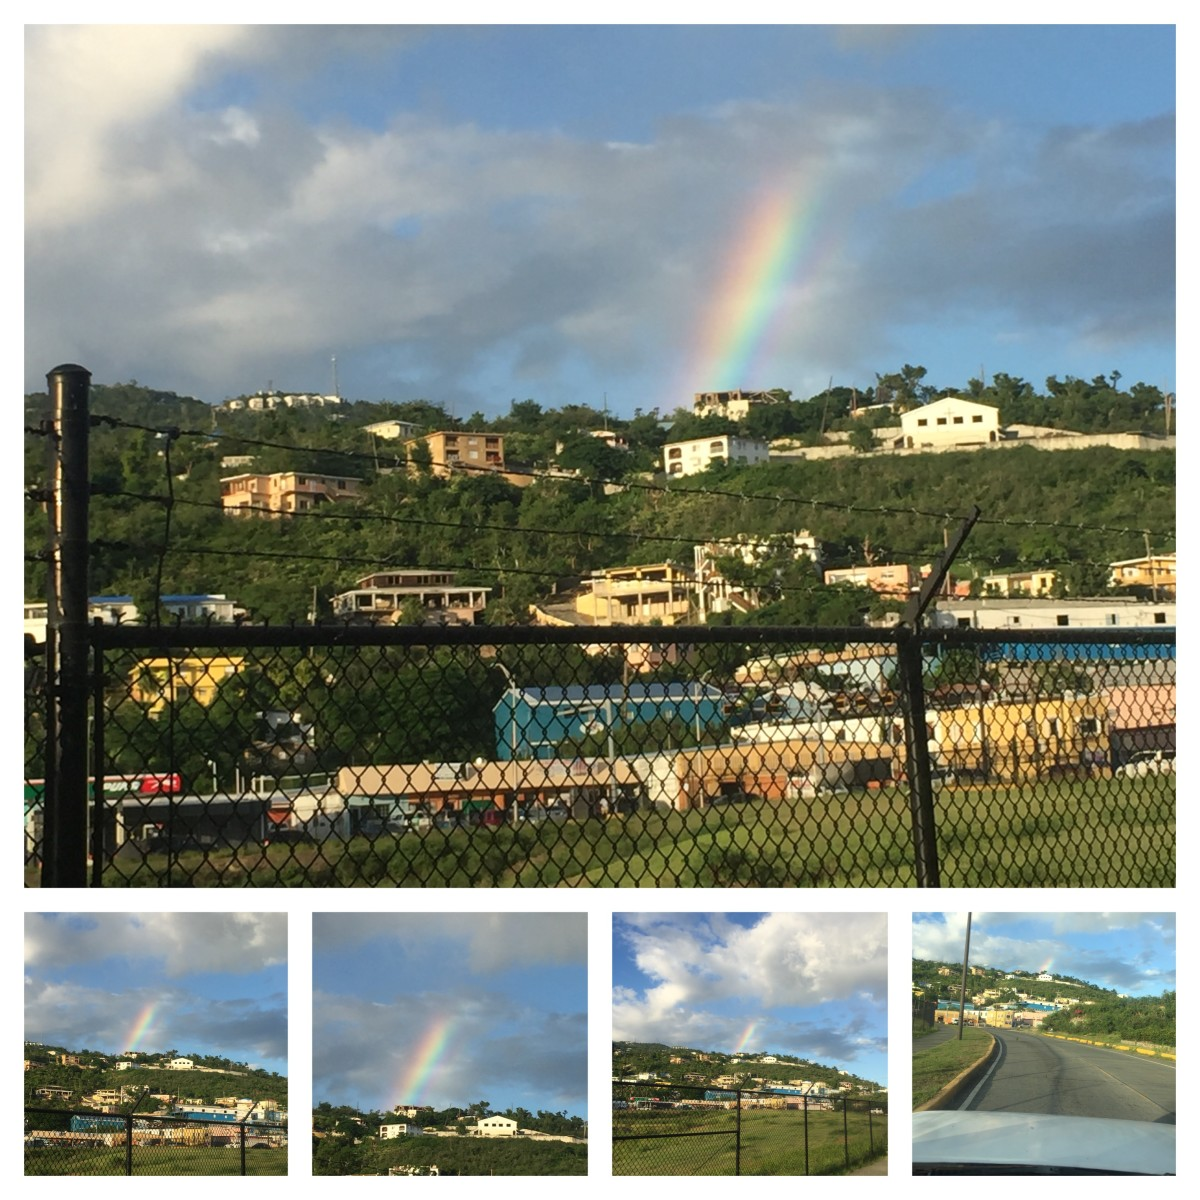 September 23, 3018 @5:34pm. Captured Rainbow by the airport road. Over crown mountain.